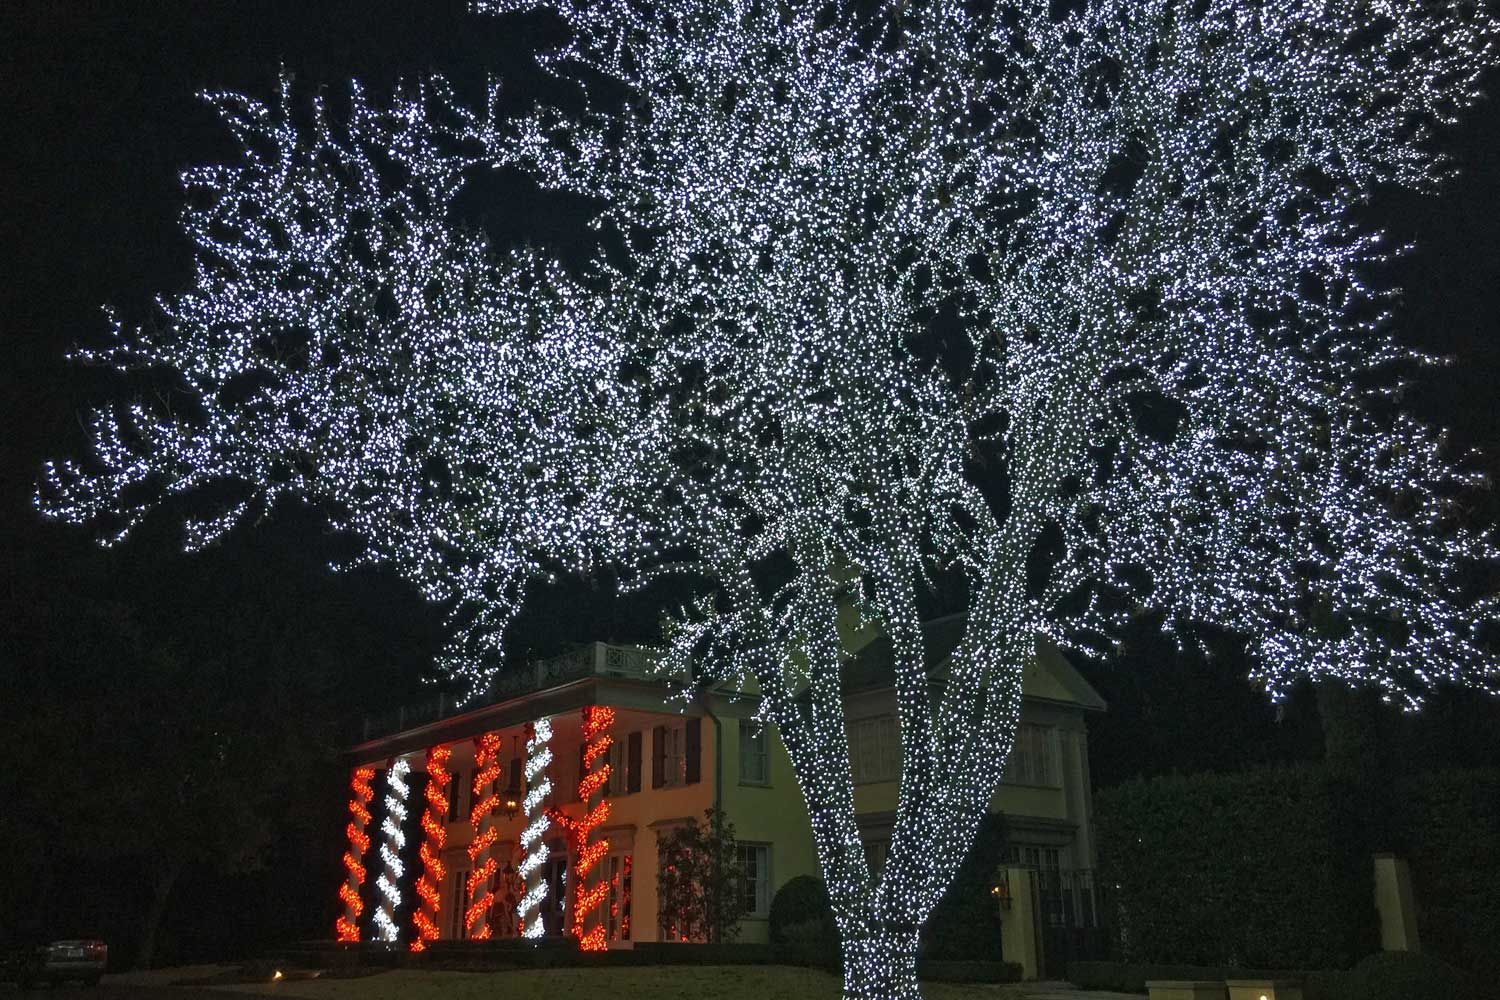 One of the many spectacular trees illuminated on Beverly Drive in Highland Park.